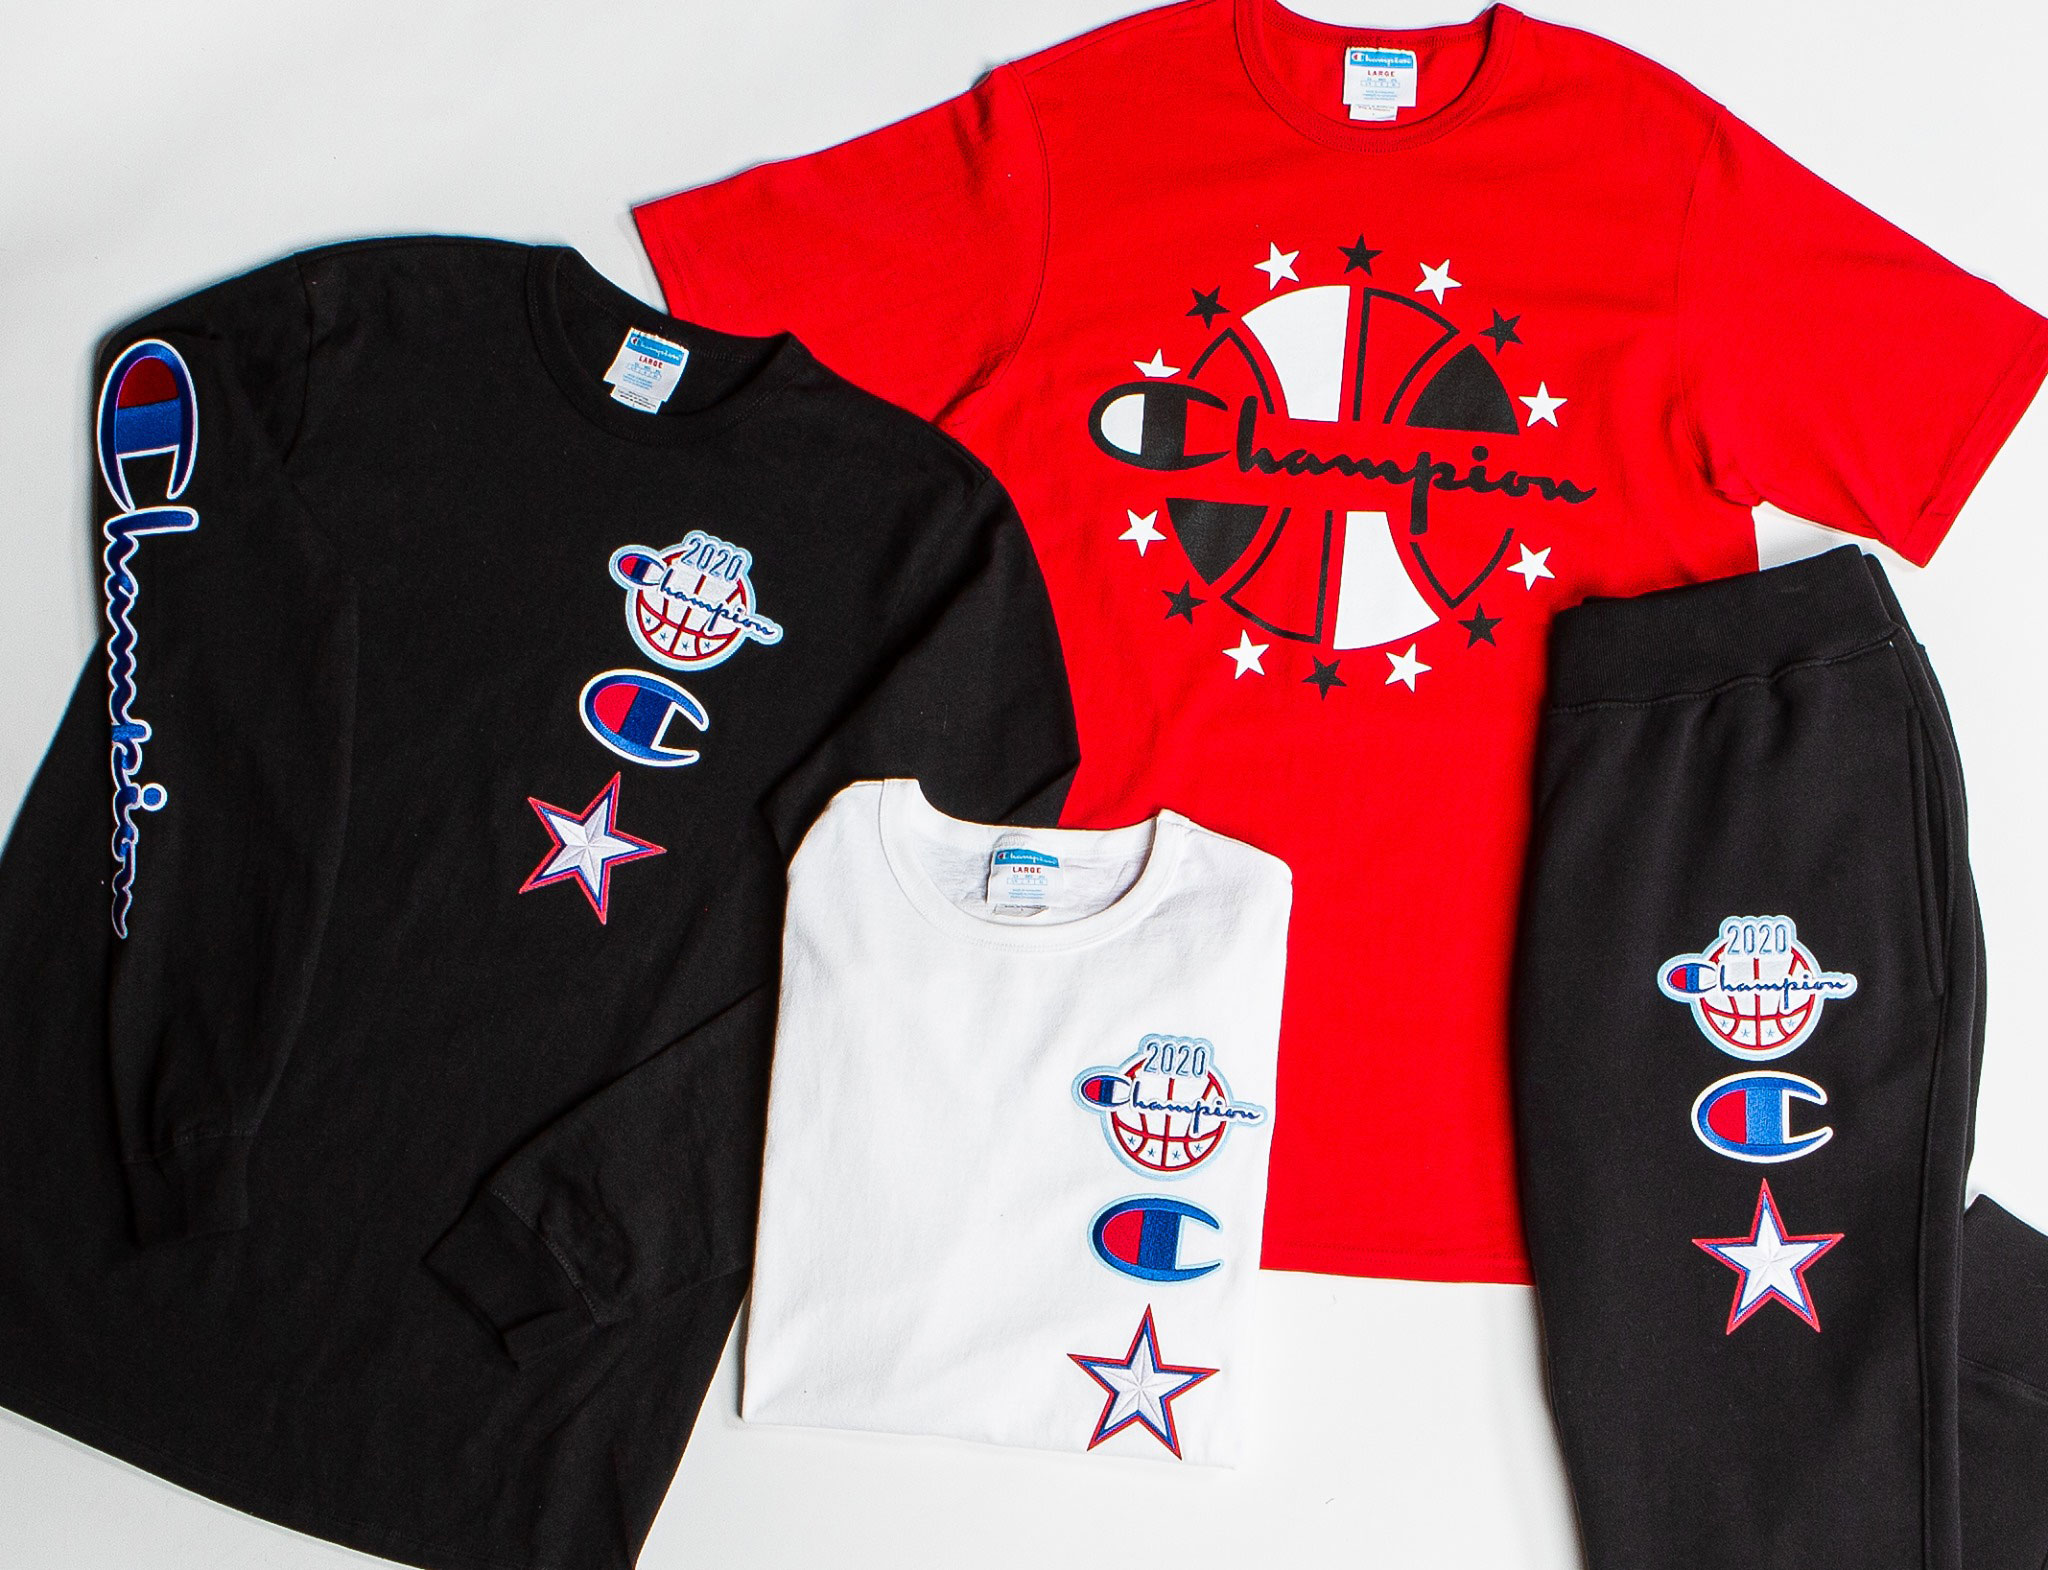 champion-2020-nba-all-star-game-clothing